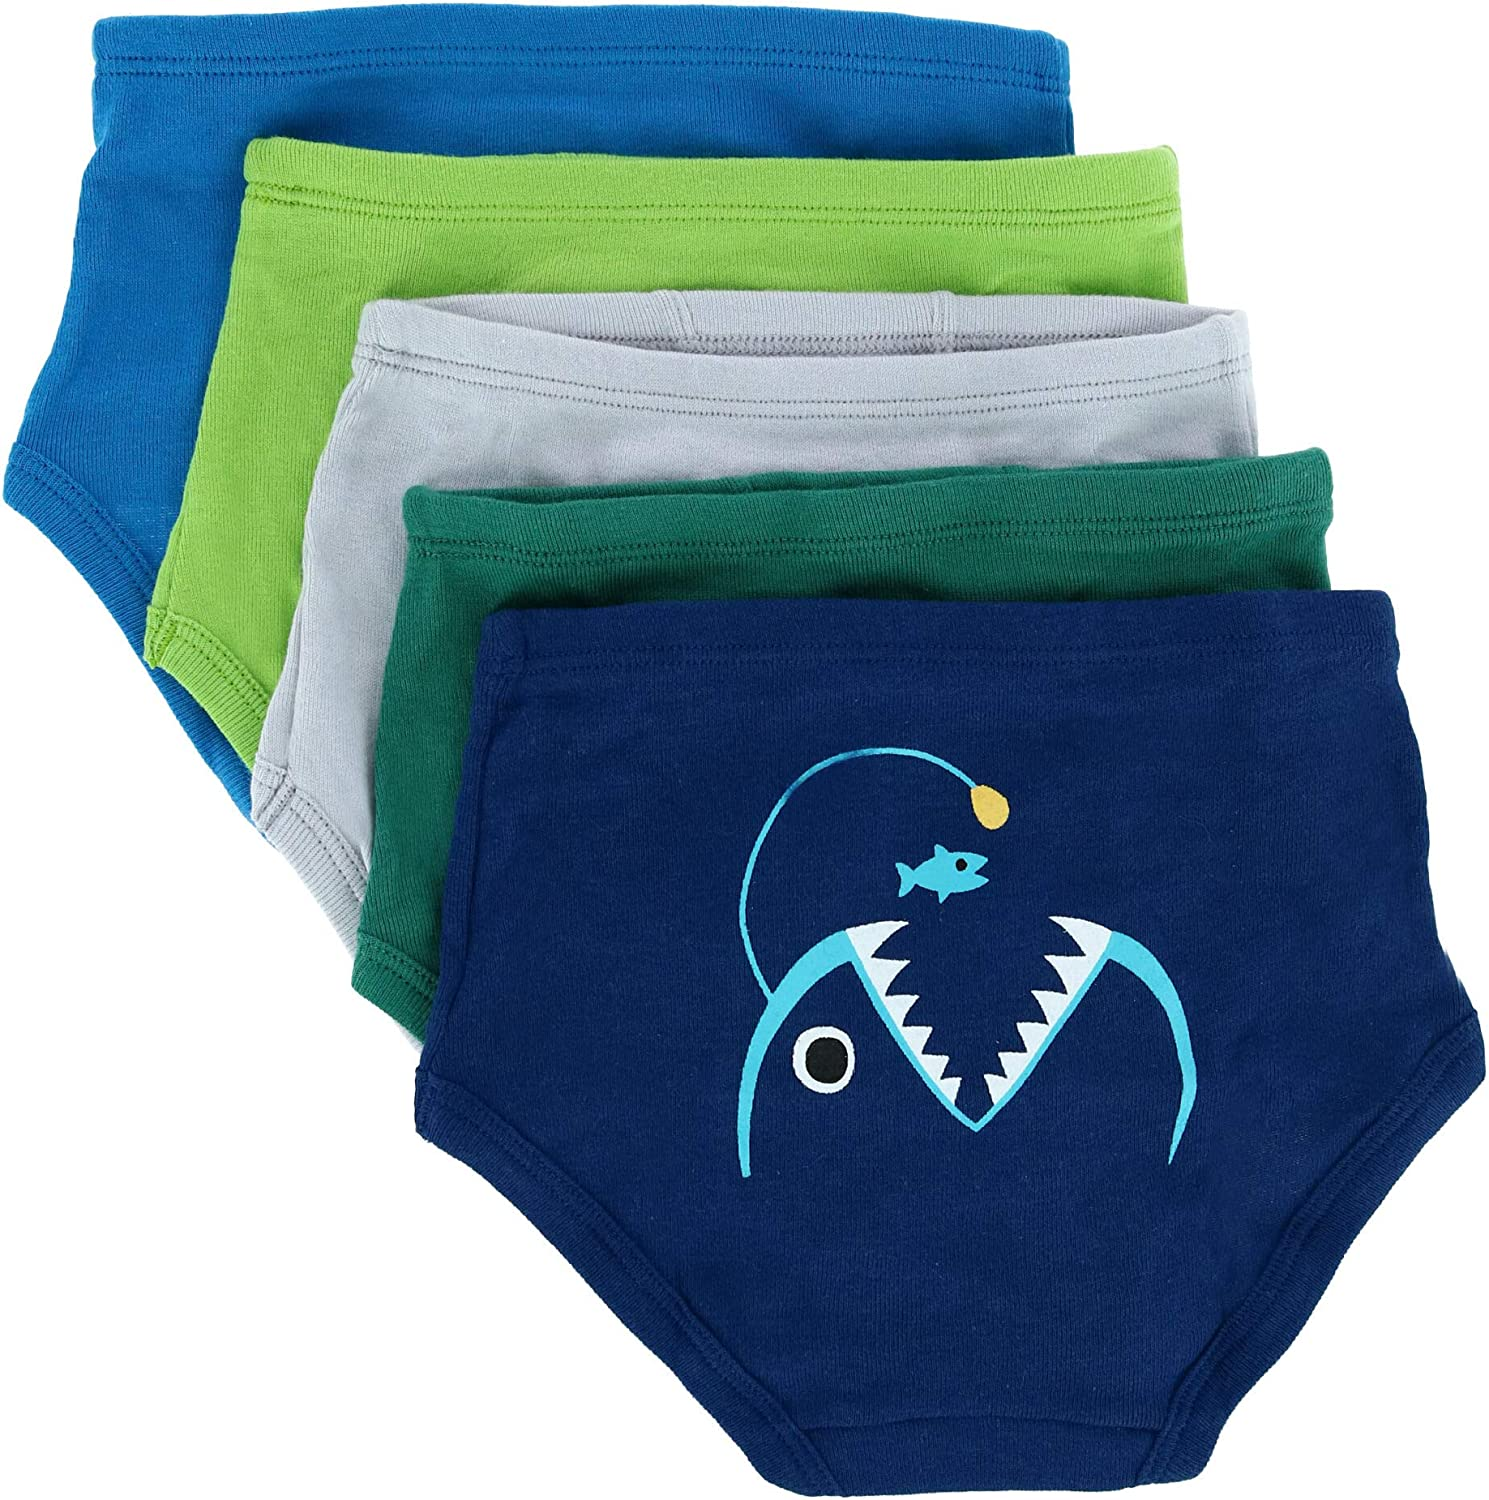 Only Boys Toddler Boy's Assorted Shark and Dino Print Briefs, 4T, Assorted